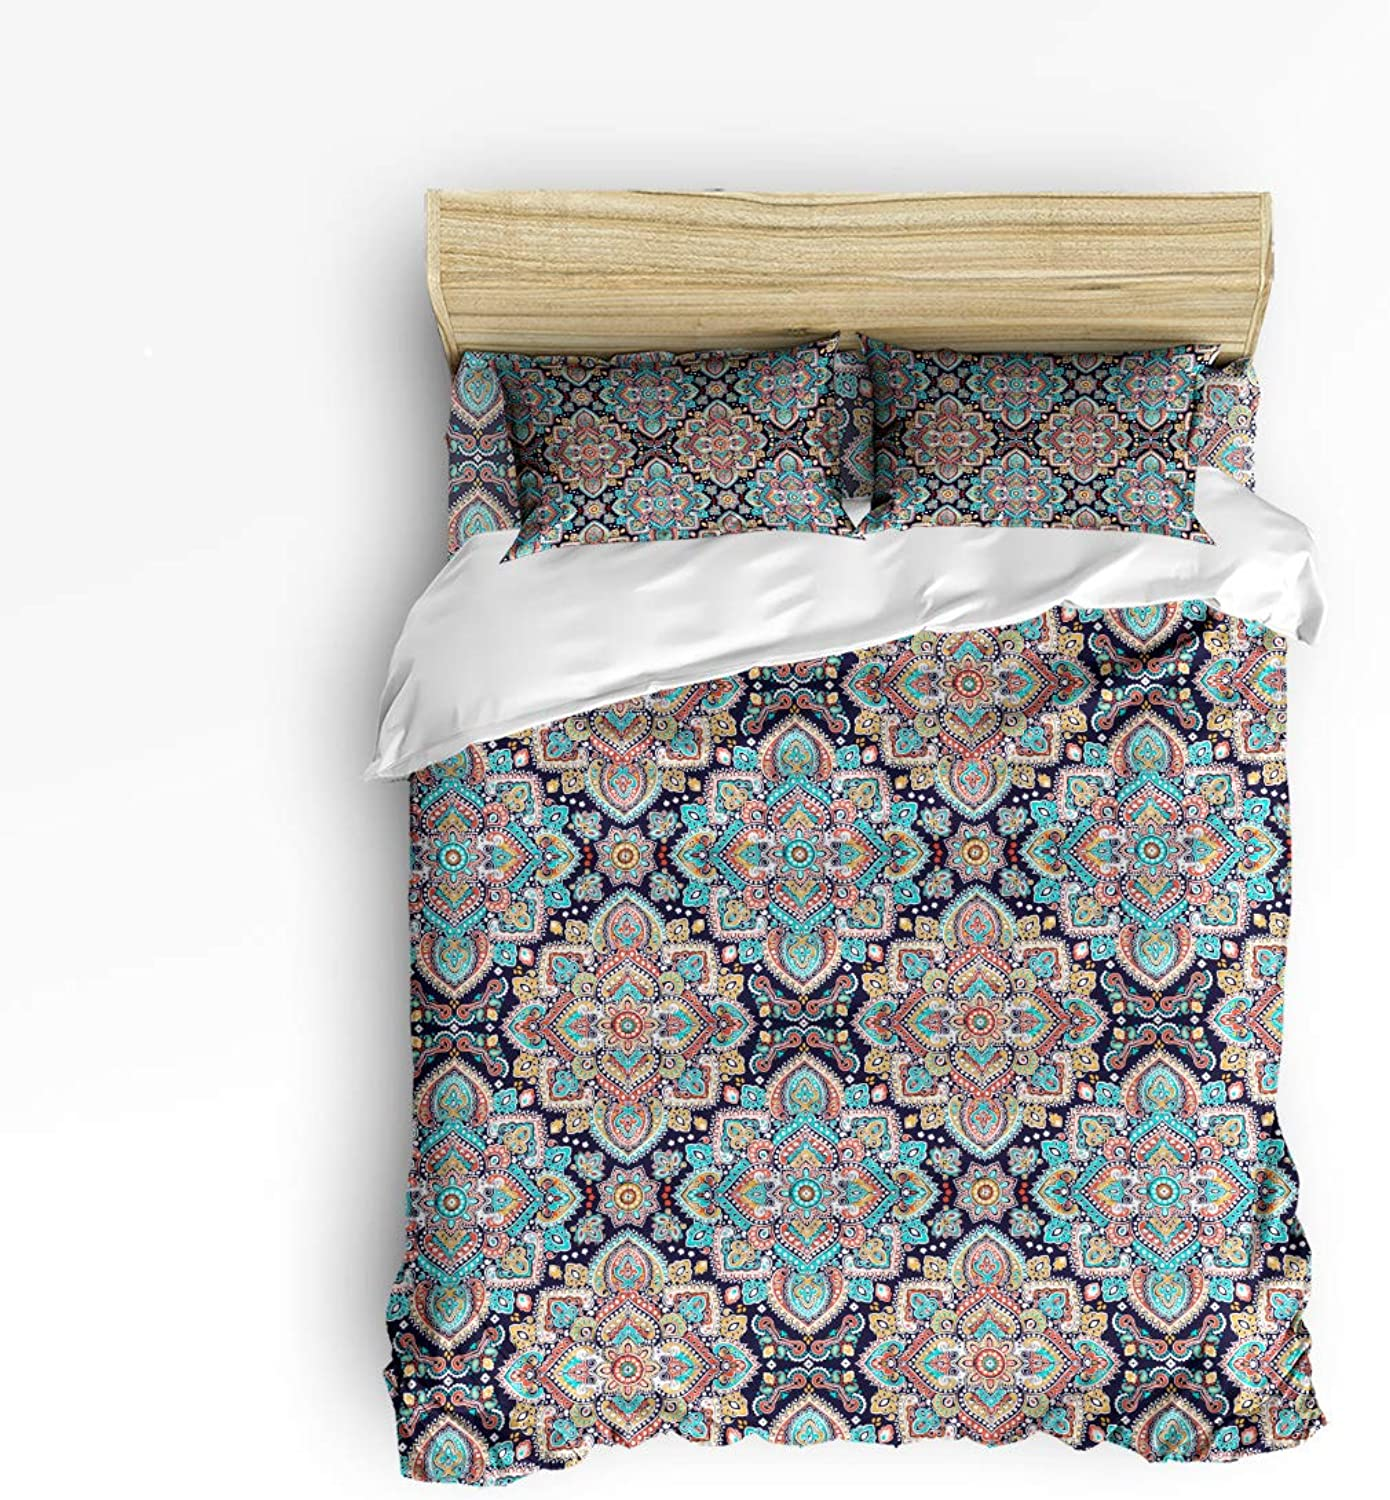 USOPHIA Twin Size, 4 Pieces Bed Sheets Set, Set, Set